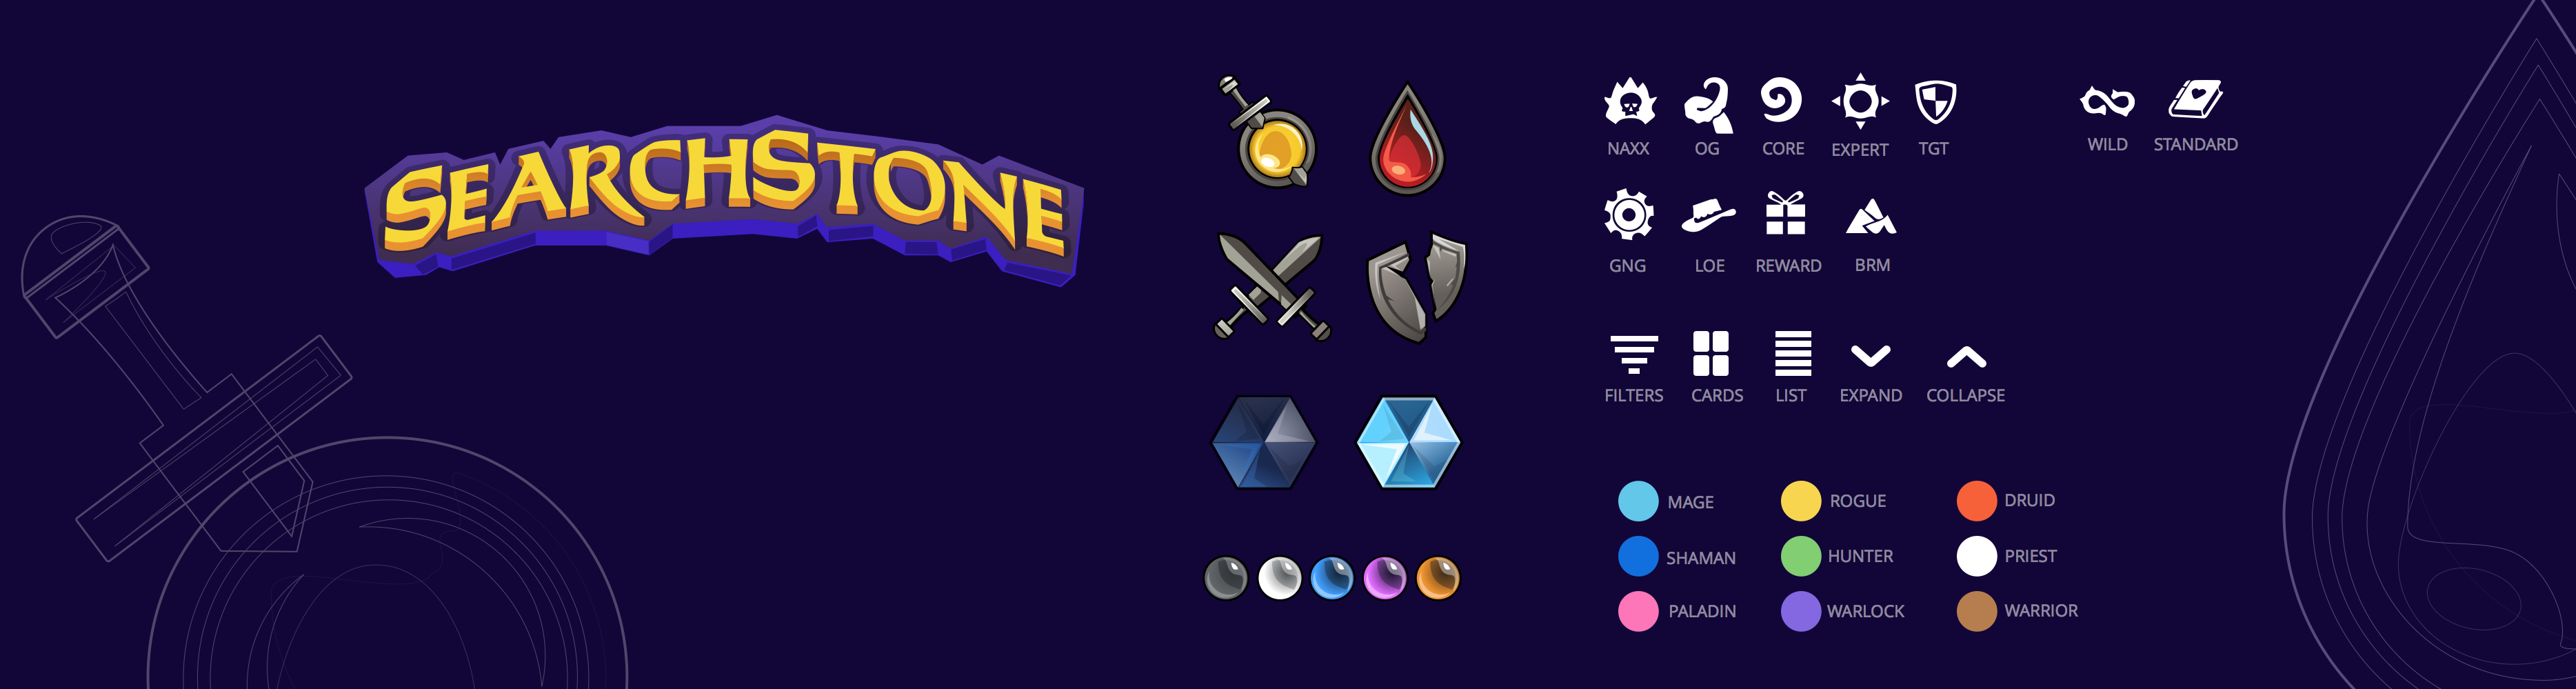 A painstakingly crafted search for Hearthstone - Algolia Stories